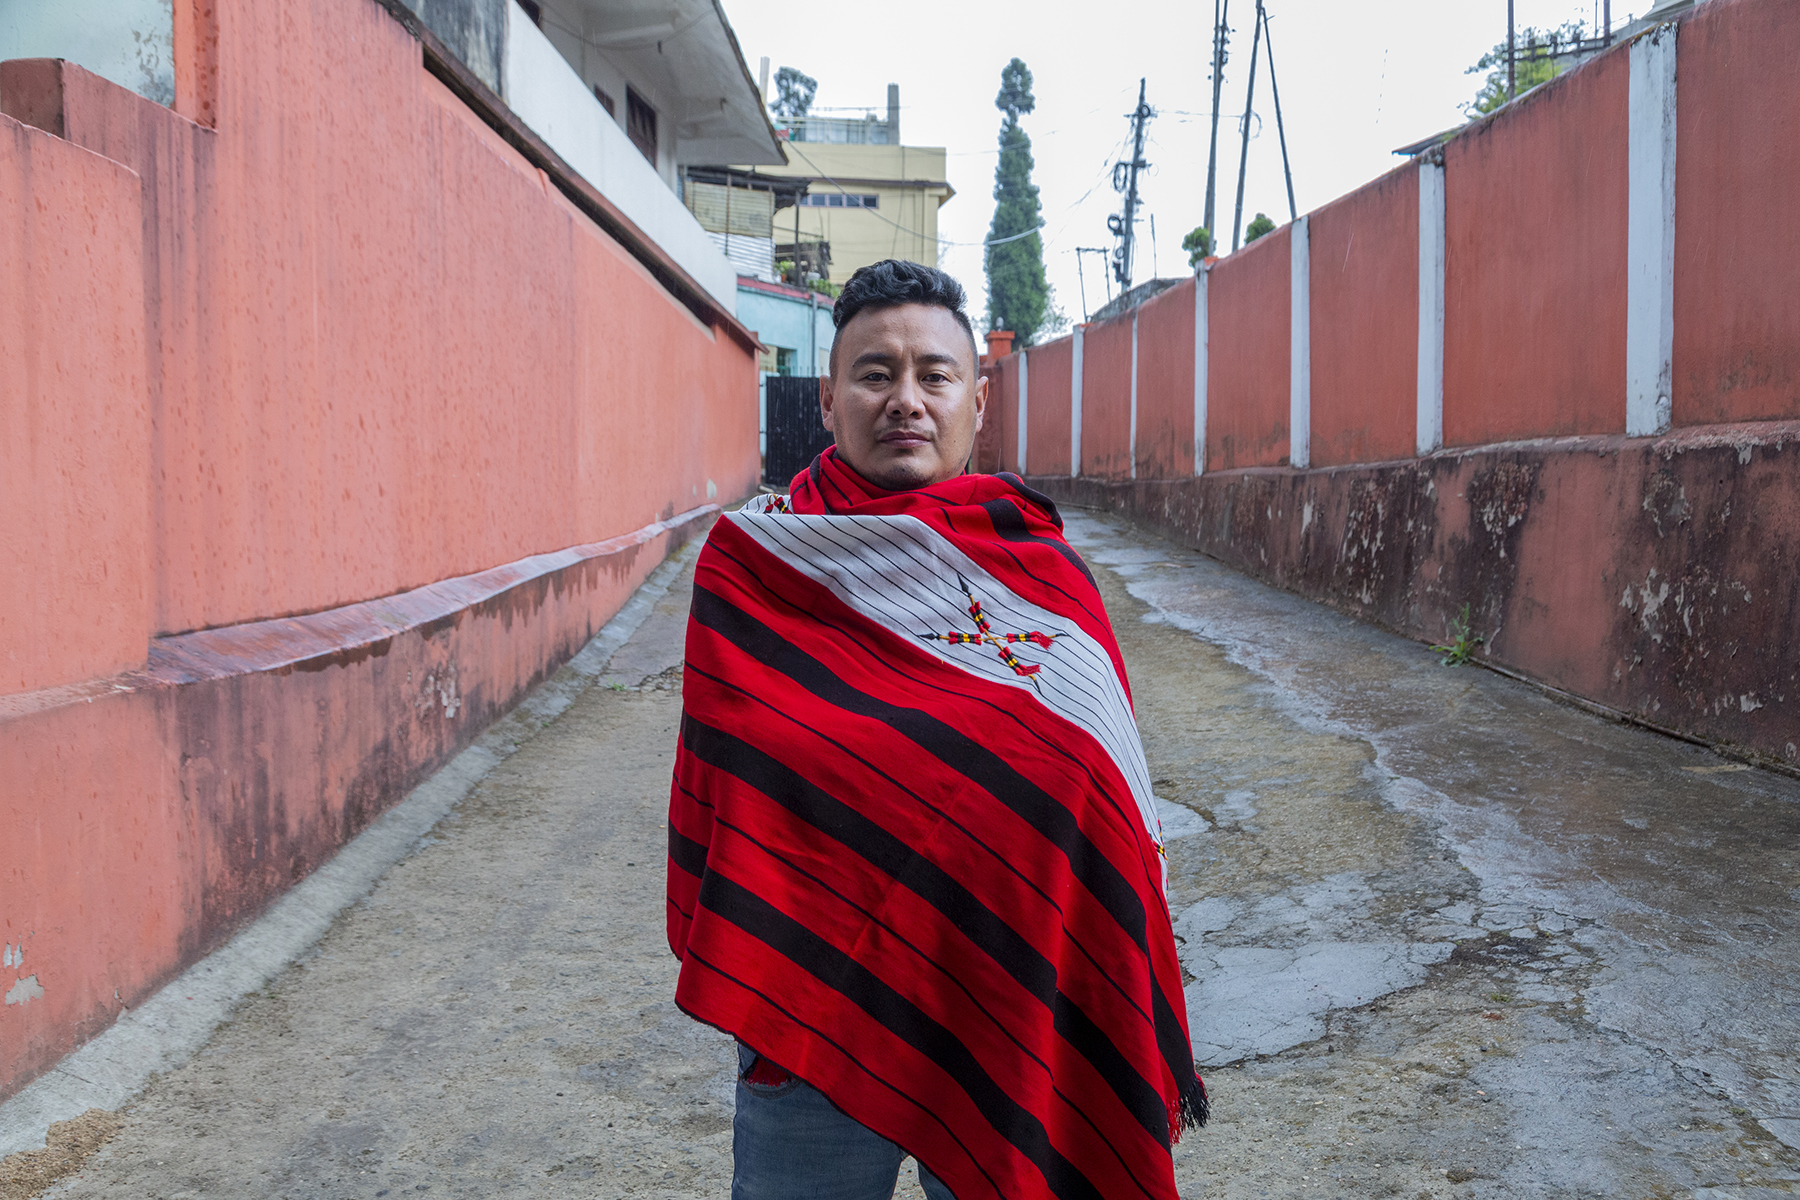 Kilumo stands outdoors on a concrete surface between two terracotta painted walls that stretch lengthwise on either side. A red Naga shawl is wrapped around him, covering his body till his thighs. The shawl has black, widely spaced, horizontal stripes and an embroidered emblem of two crossed spears on a grey background.